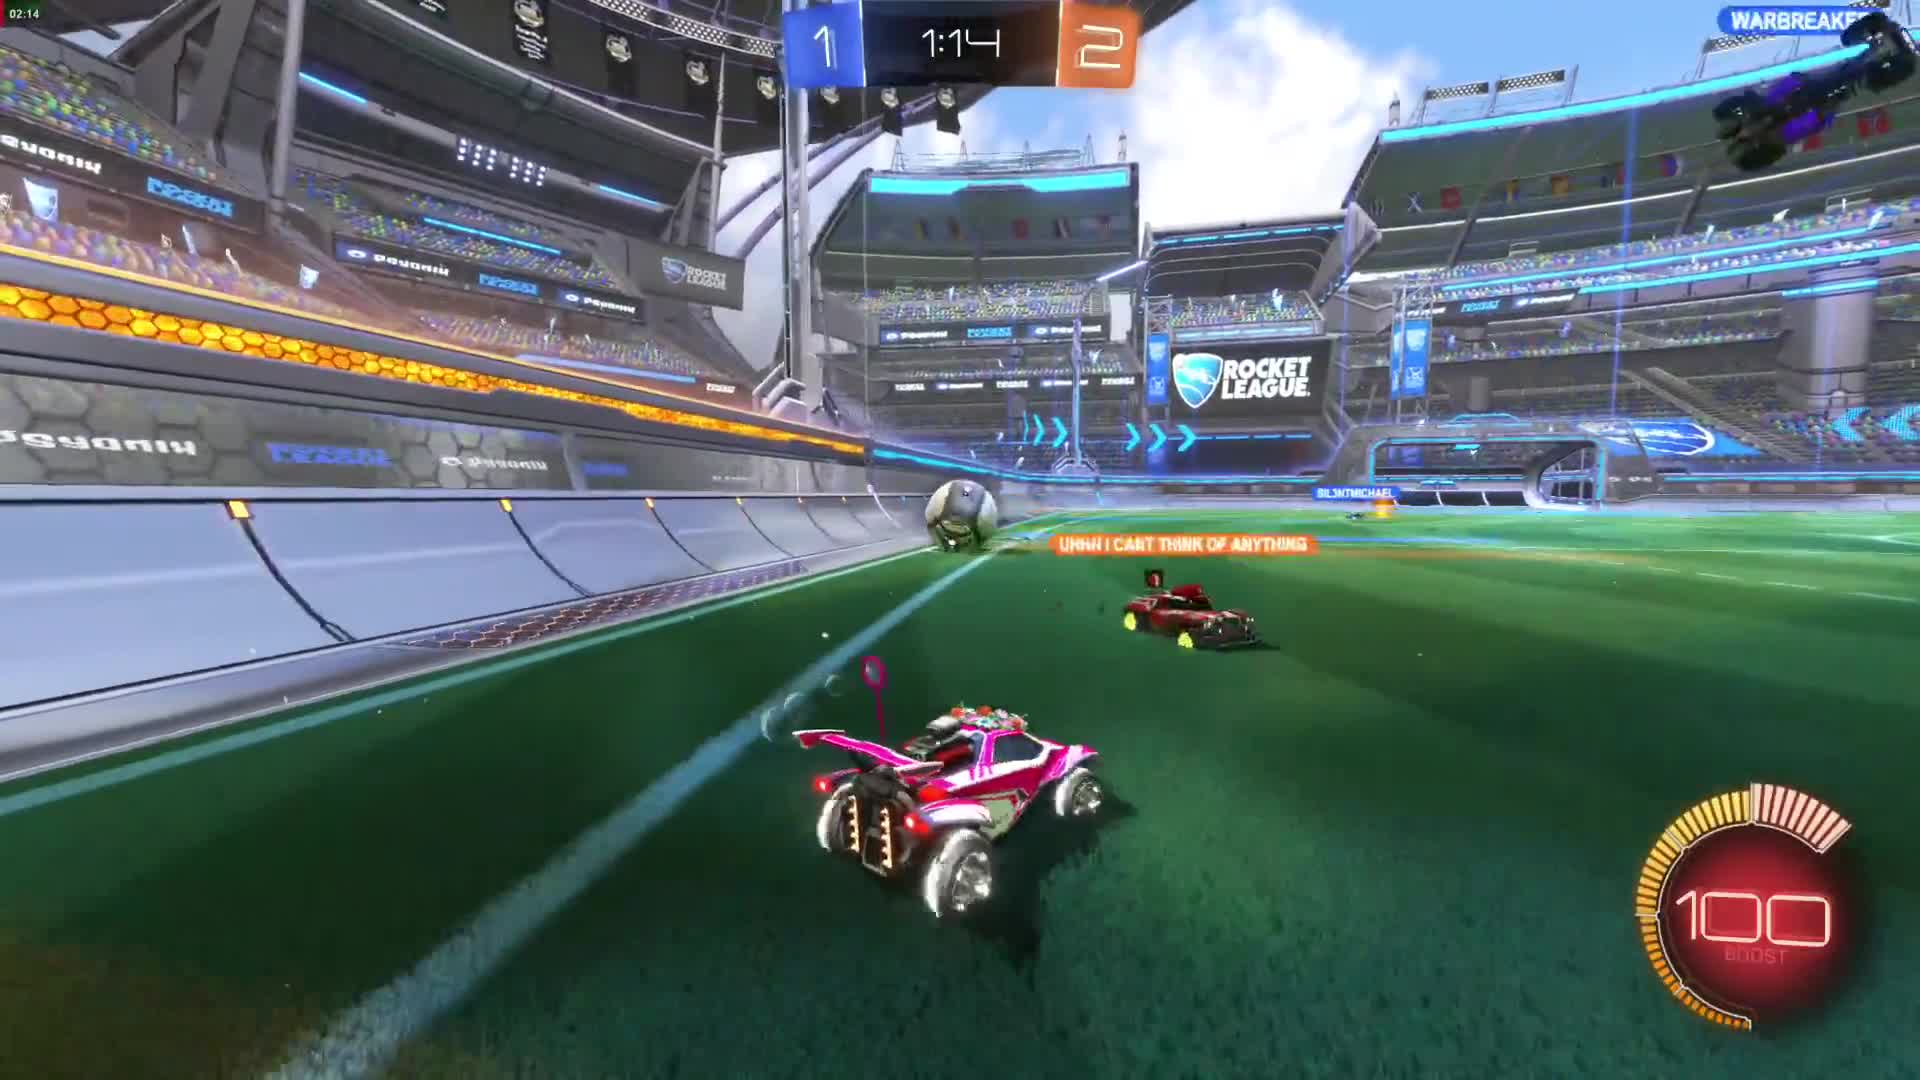 RocketLeague, rocket league, Maybe... *sniff* maybe. GIFs